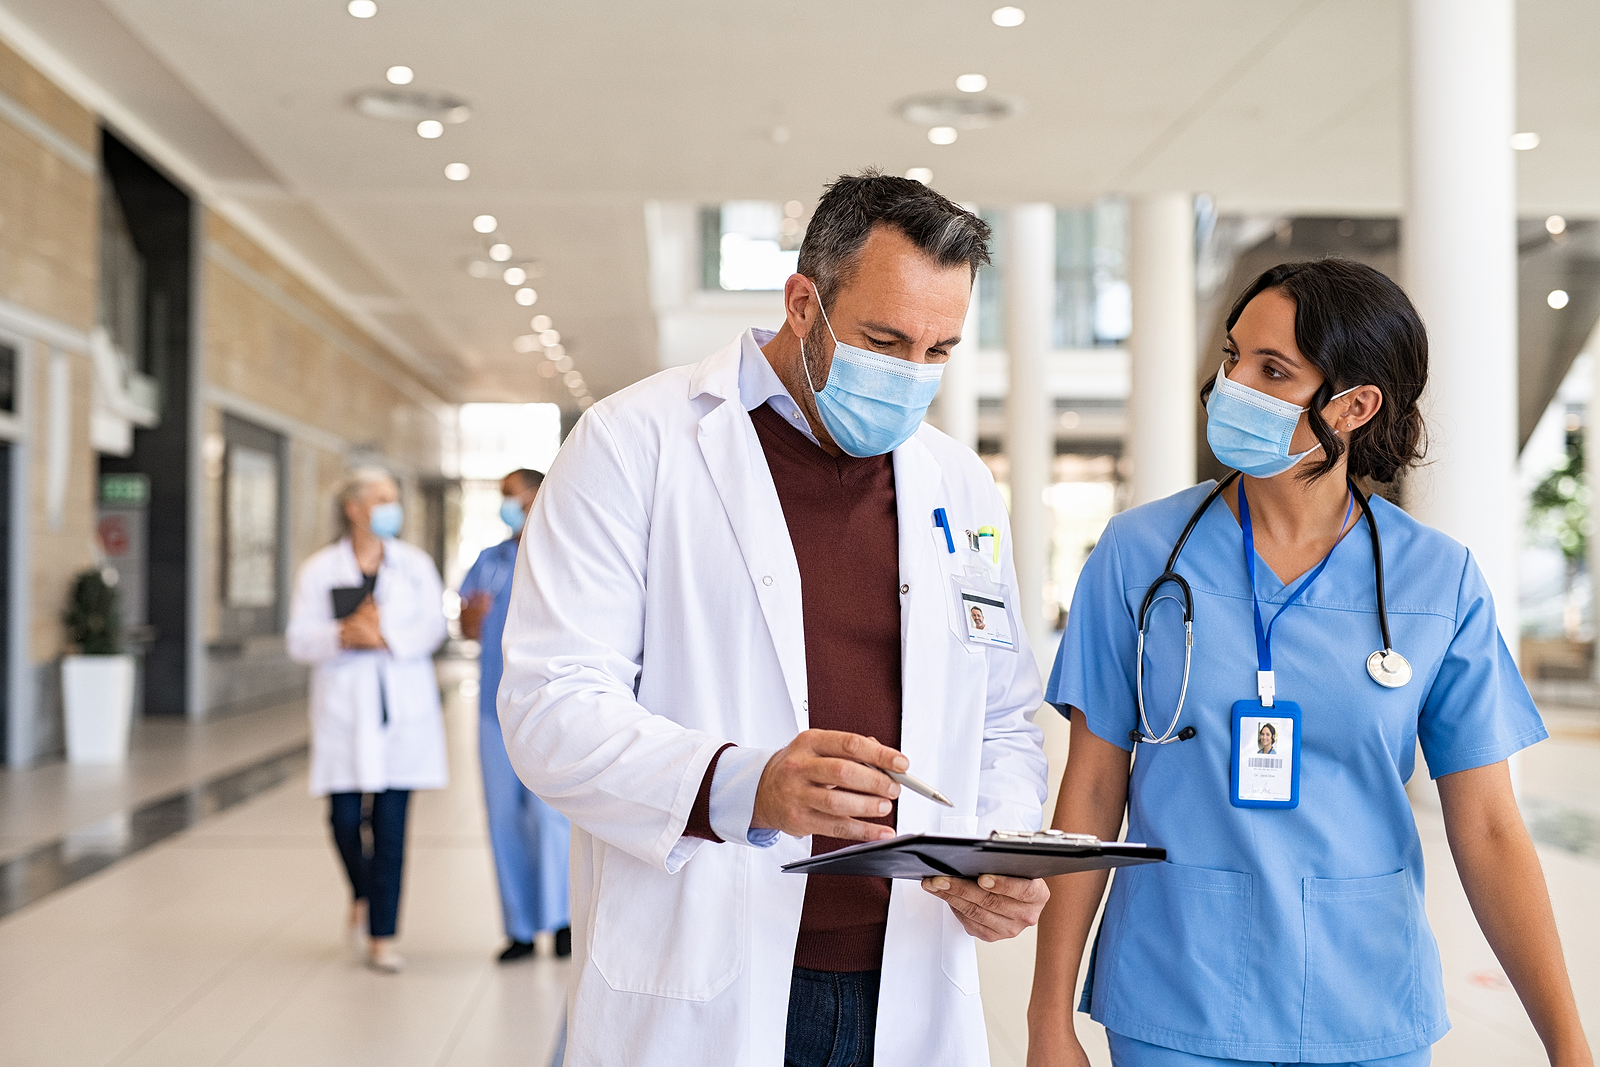 General practitioner and nurse wearing surgical face mask in hospital hallway.